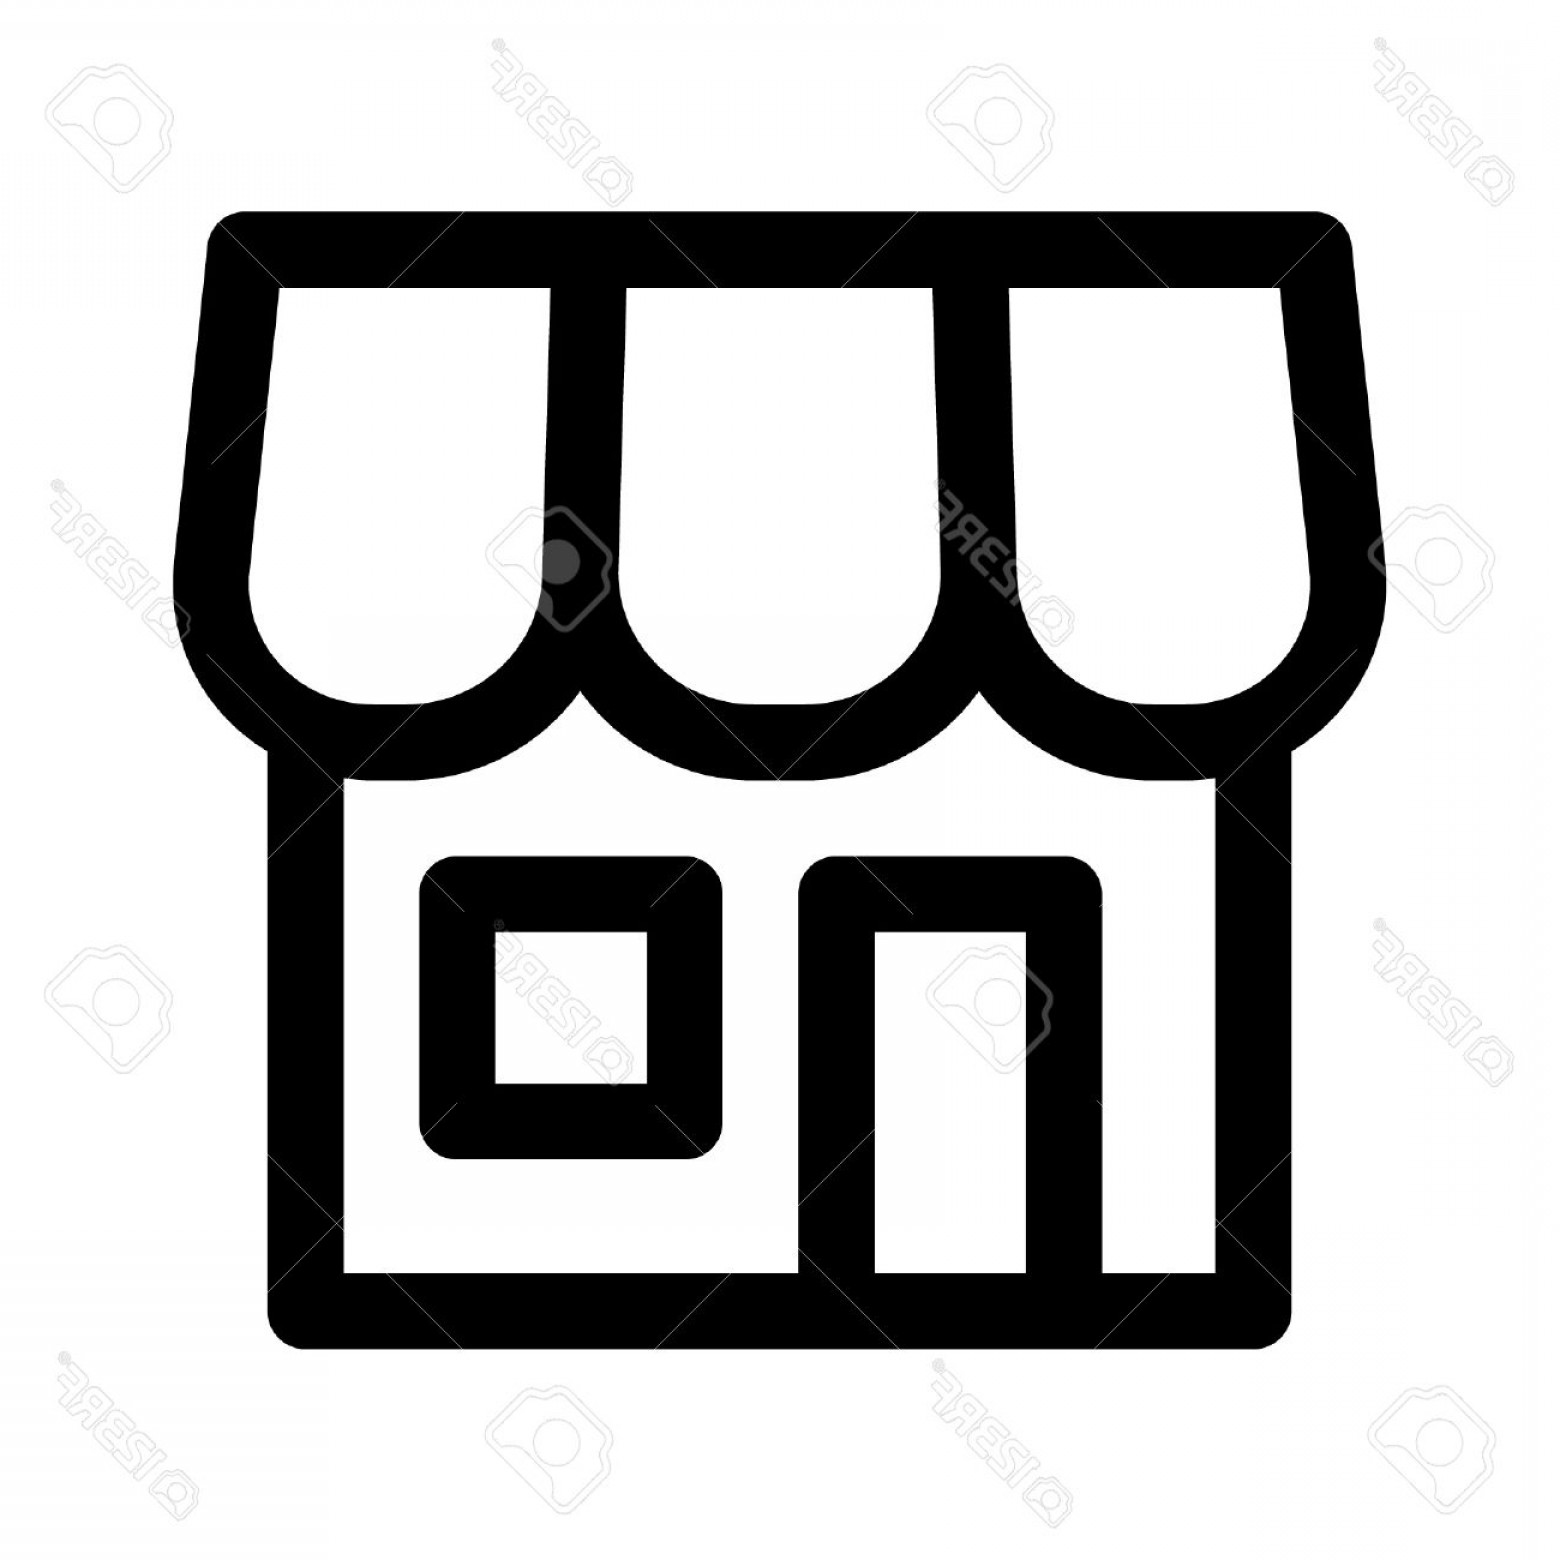 1560x1560 Vector Icons For Clothing Store Website Shopatcloth